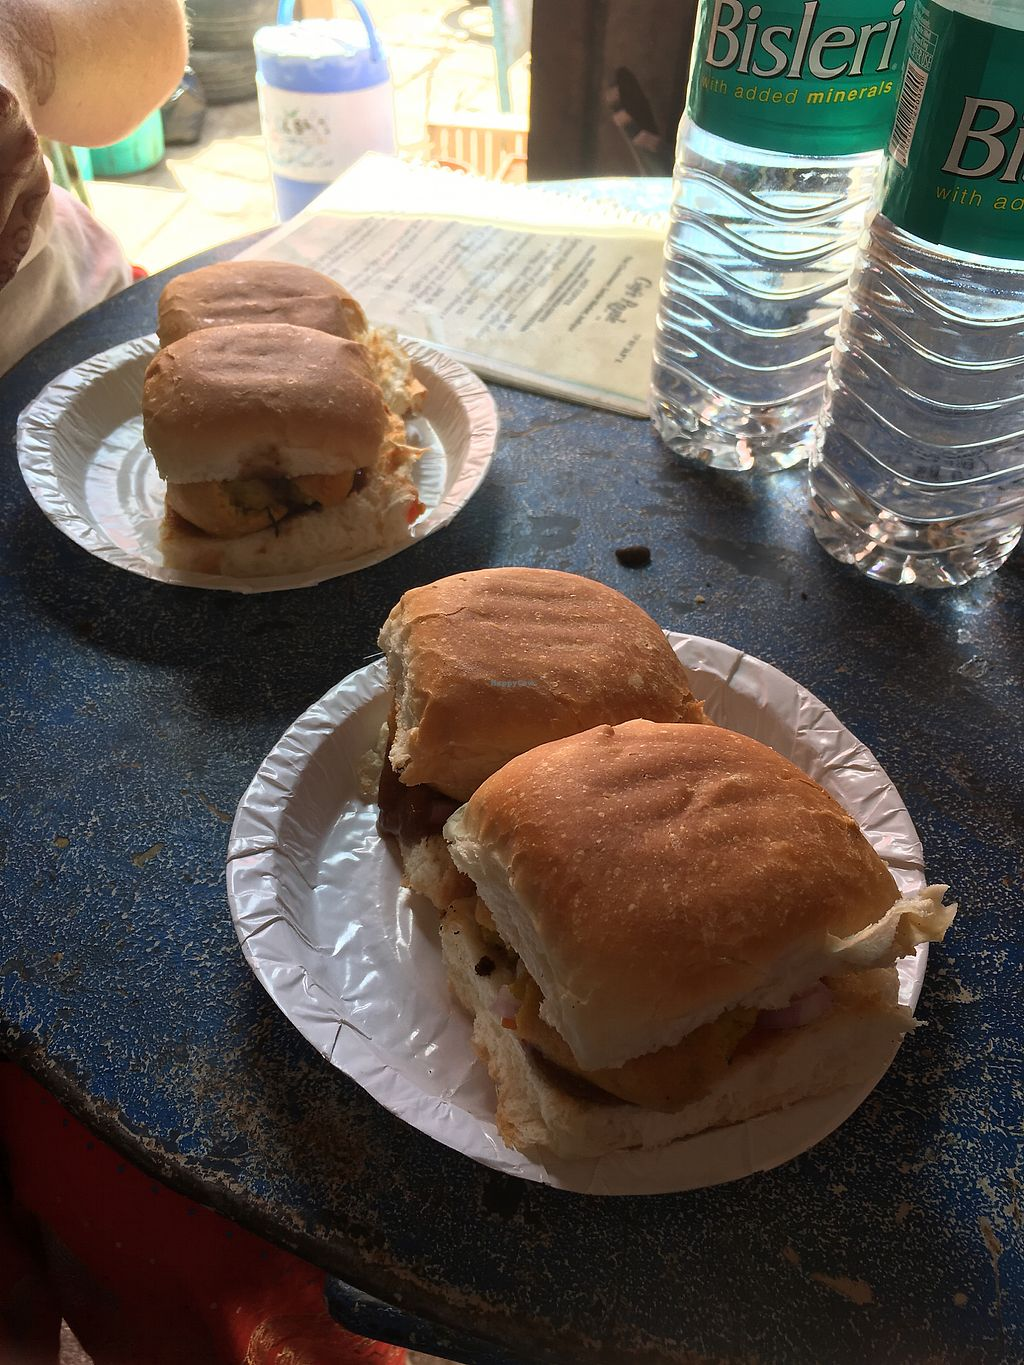 """Photo of Cafe Royale at Clock Tower  by <a href=""""/members/profile/CamilaSilvaL"""">CamilaSilvaL</a> <br/>Vada pav <br/> March 6, 2018  - <a href='/contact/abuse/image/108292/367429'>Report</a>"""